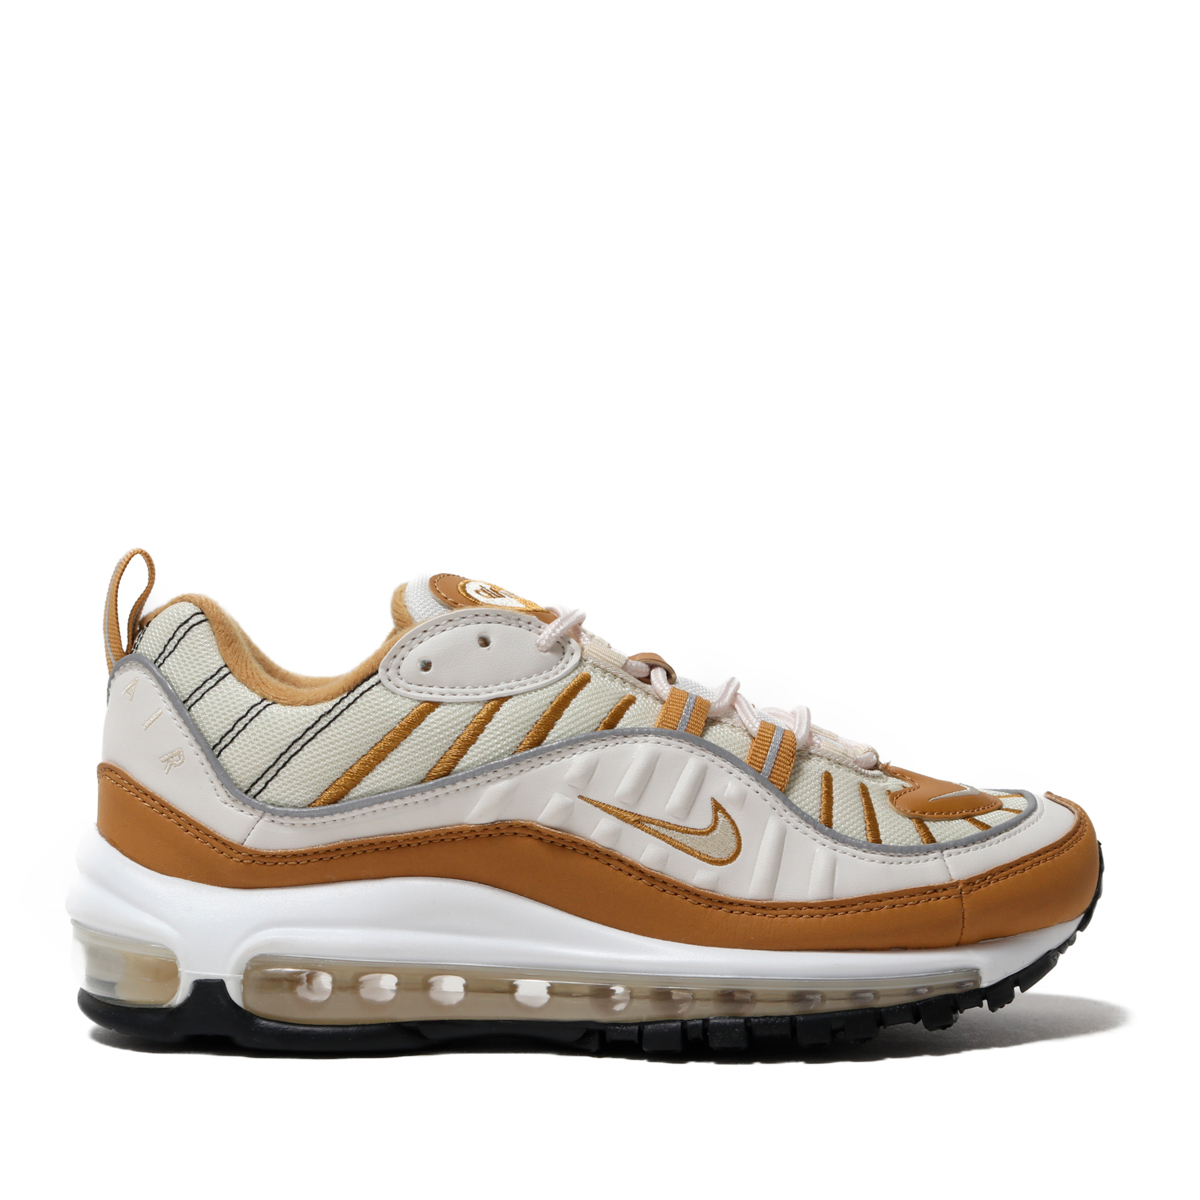 on sale c508f 73c0b NIKE W AIR MAX 98 (PHANTOMBEACH-WHEAT-REFLECT SILVER) (Nike women Air Max  98)